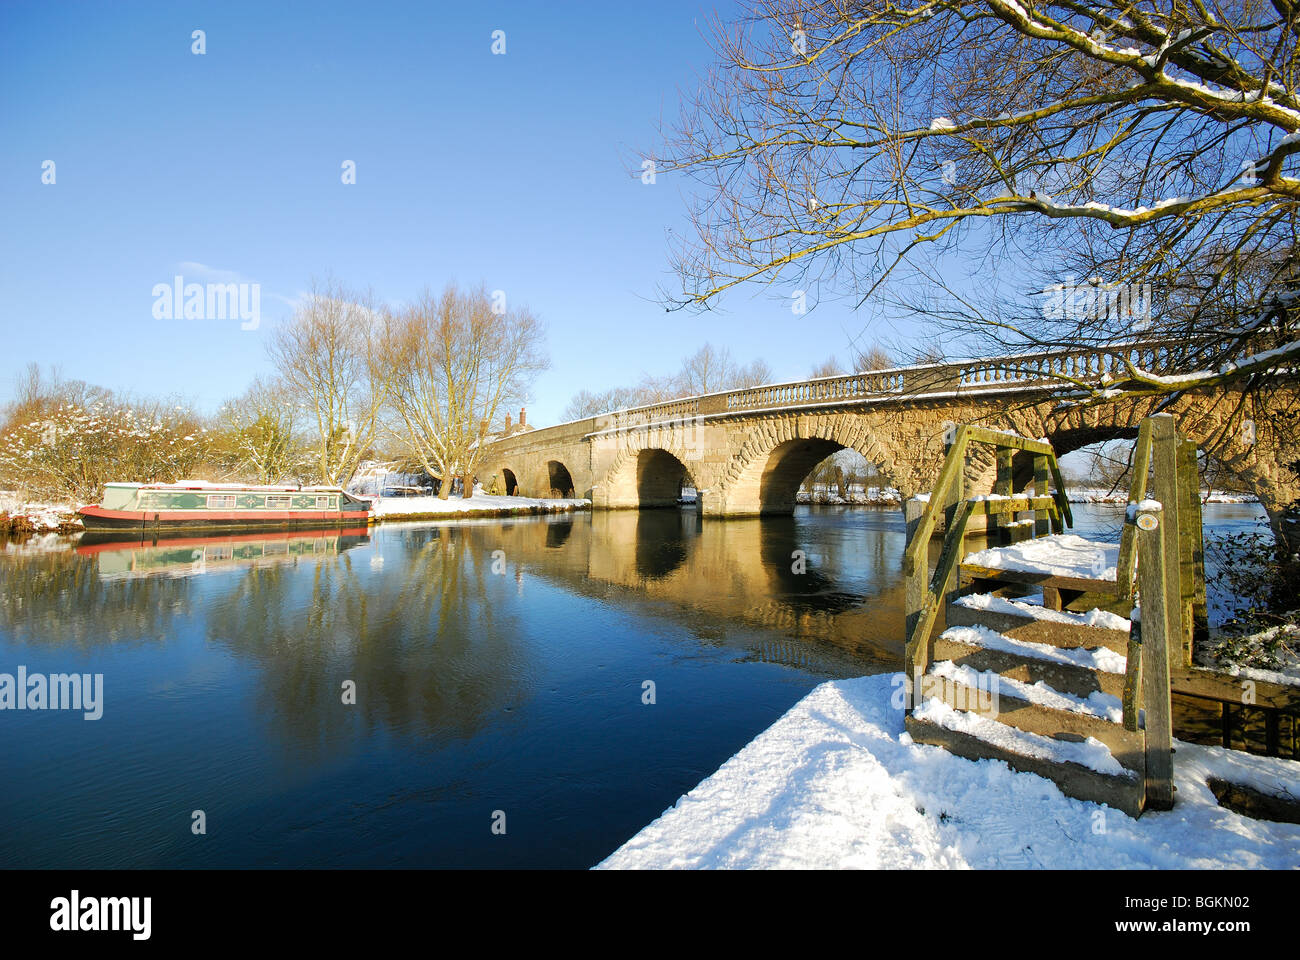 OXFORDSHIRE, UK. A winter view of the River Thames and Thames towpath. January 2010. Stock Photo